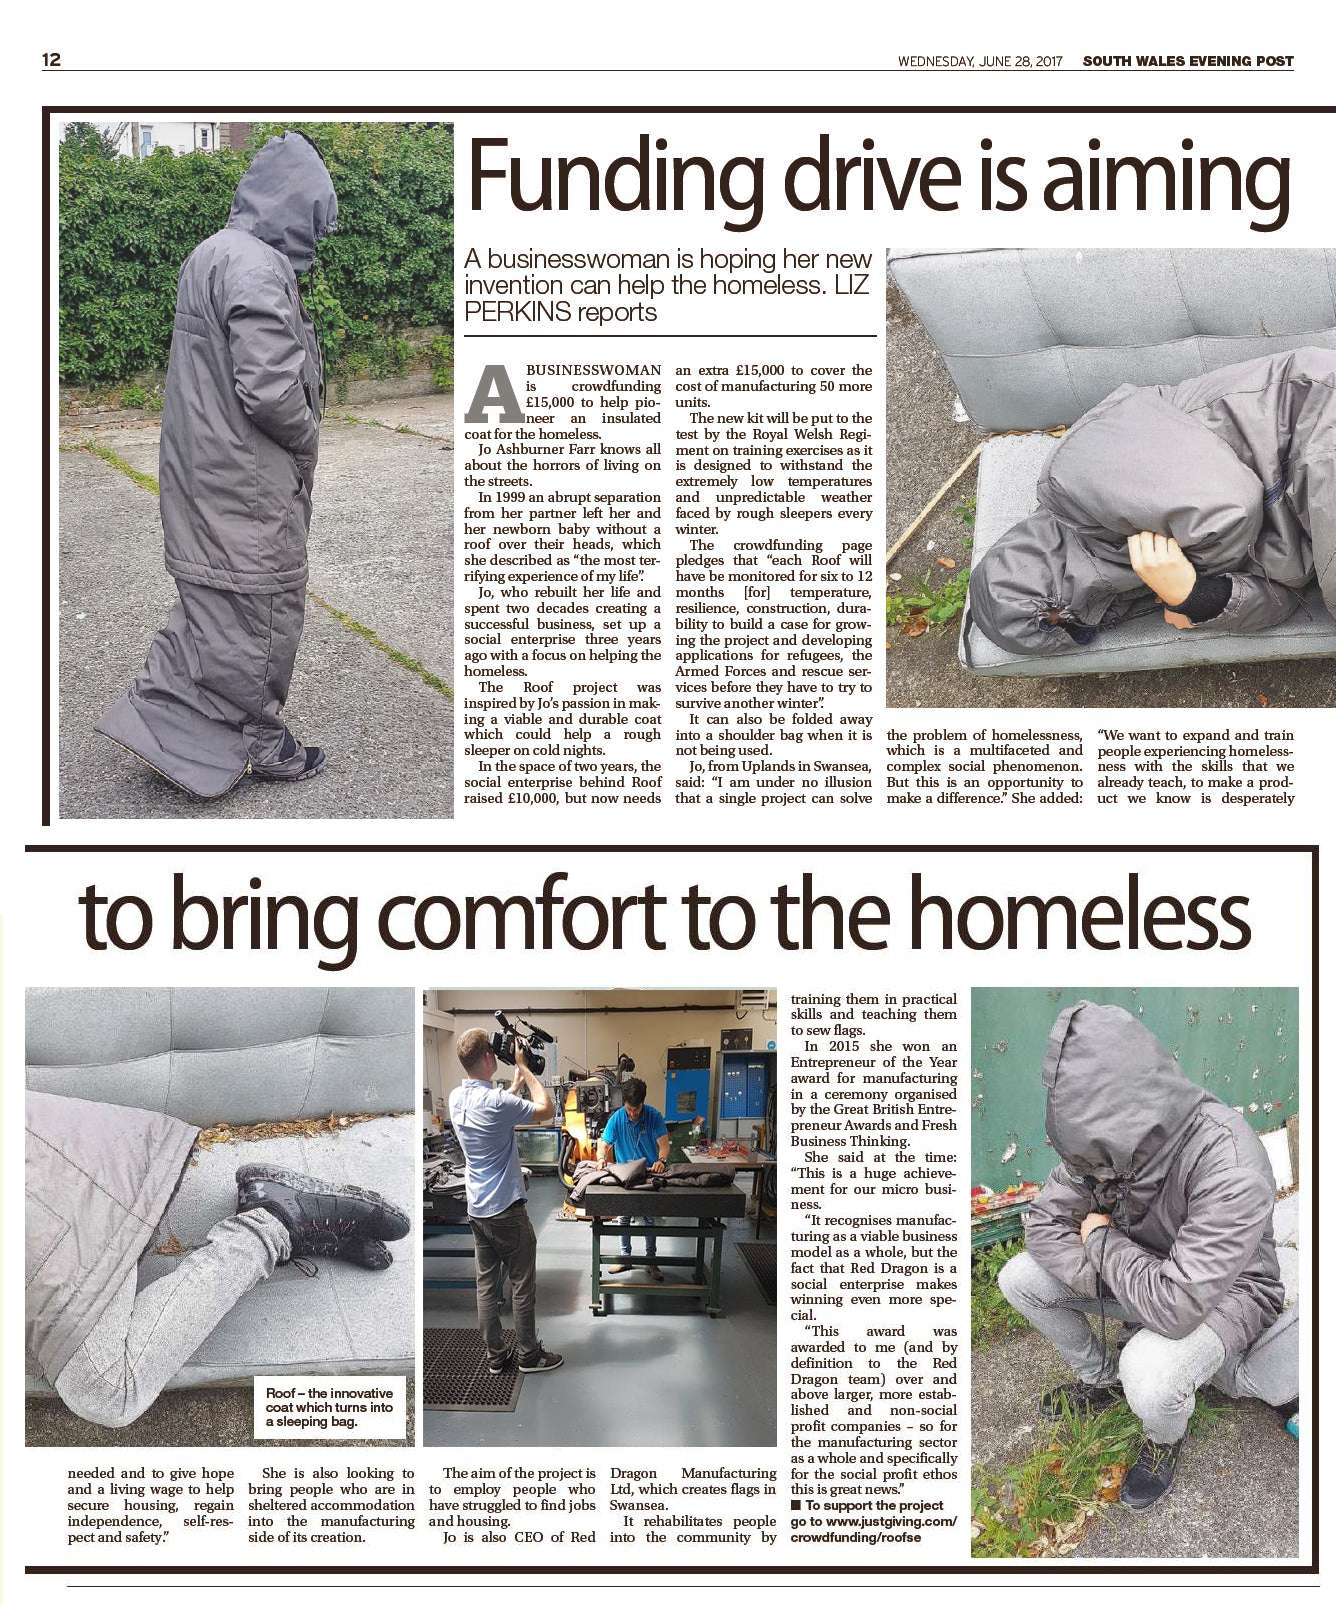 South Wales Evening Post ROOF coat bag saving lives on the streets